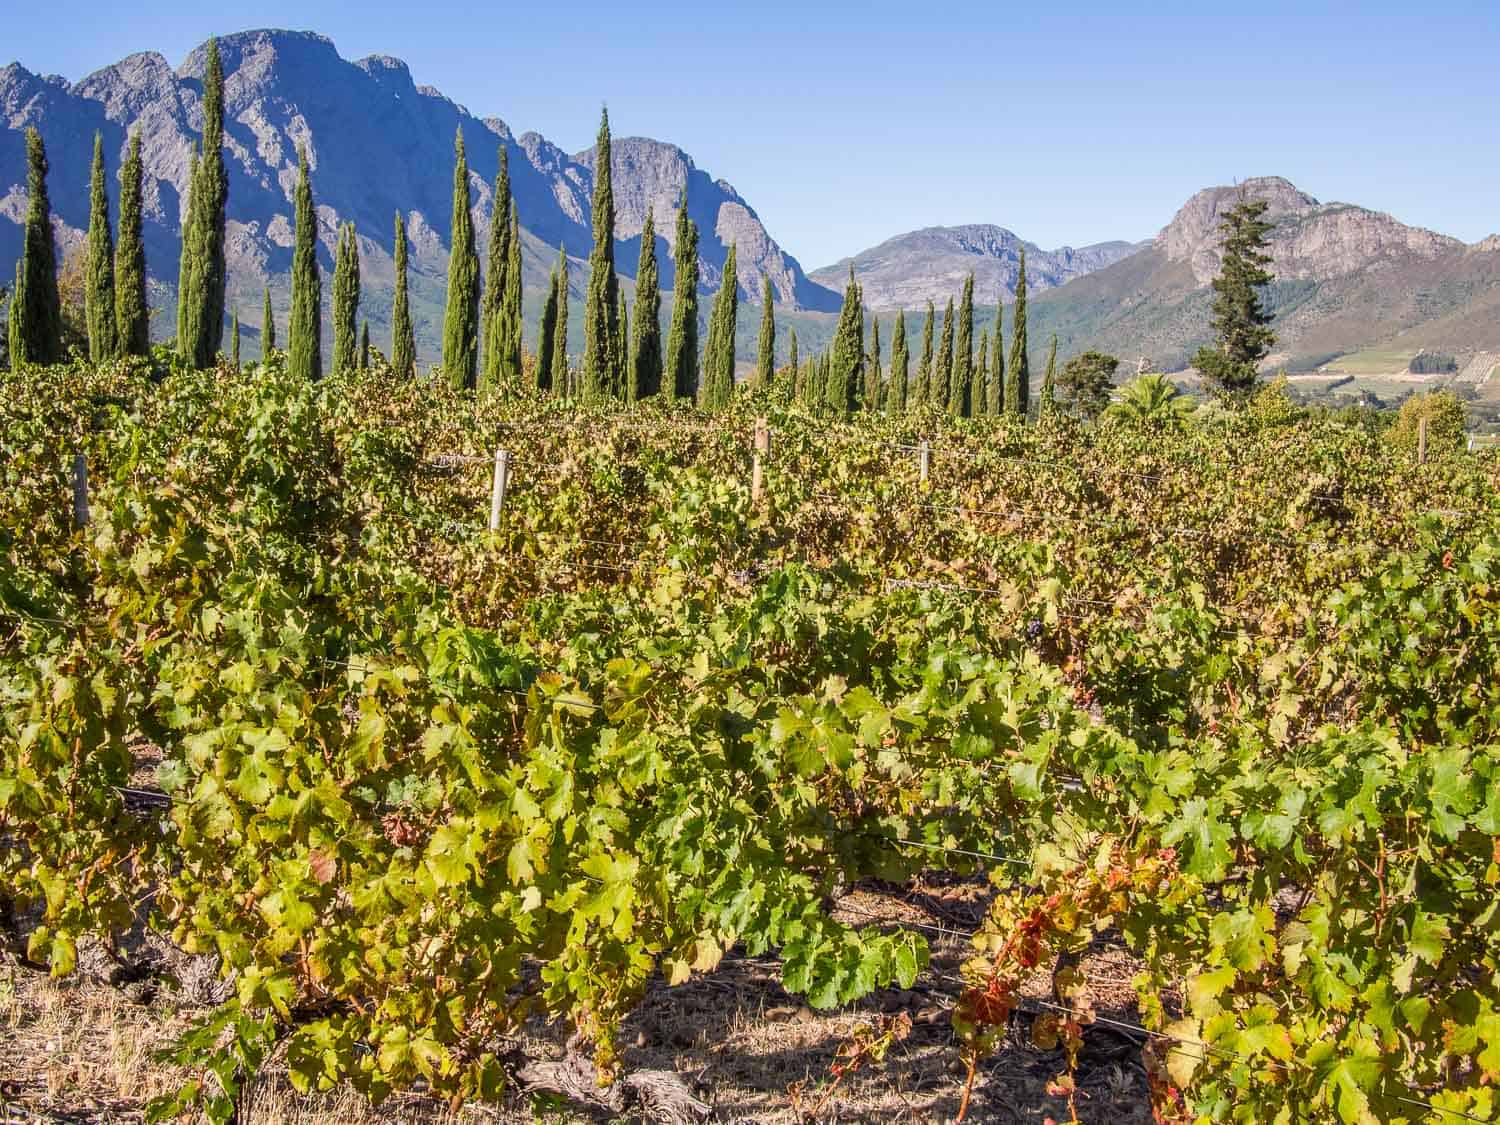 In our Franschhoek travel guide discover the best things to do in Franschhoek, which gourmet restaurants to choose, where to stay and more